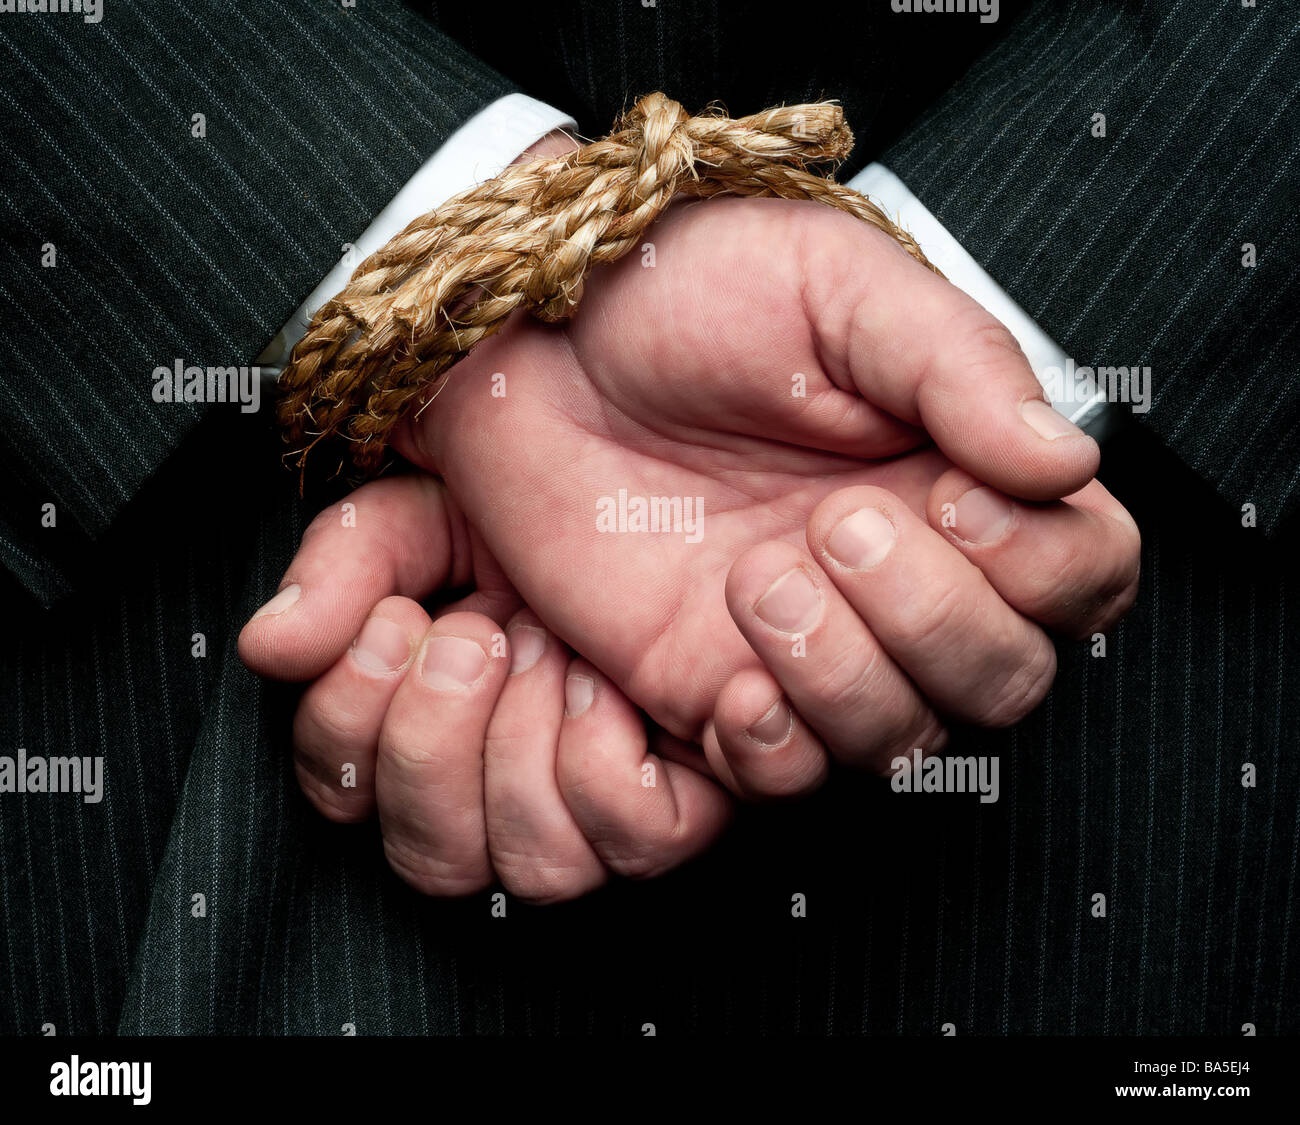 A horizontal view of a business man with his hands tied behind him Concept My hands are tied - Stock Image